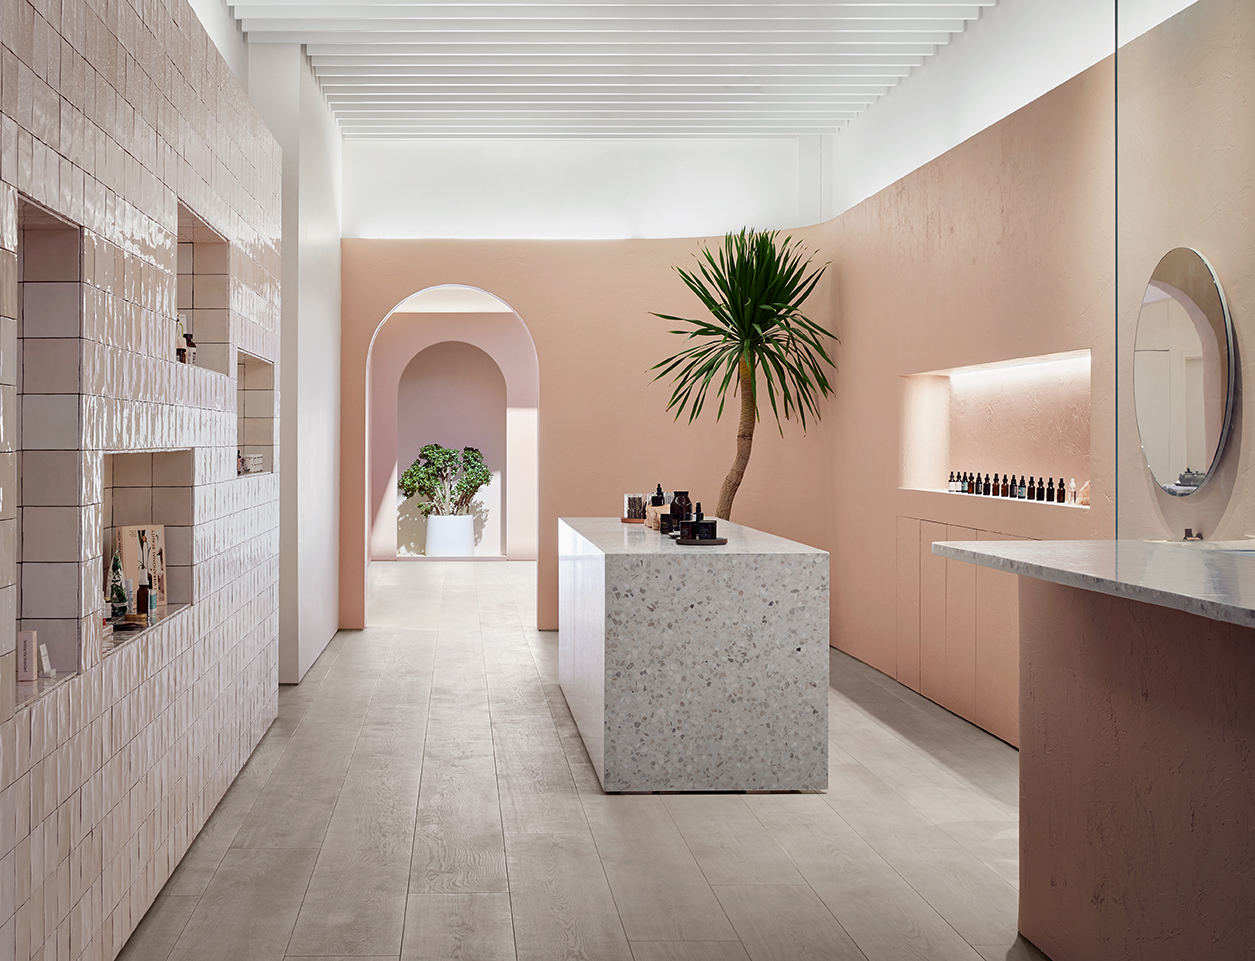 Photo of store interior with tile, terrazzo, and wood surfaces in warm, light tones